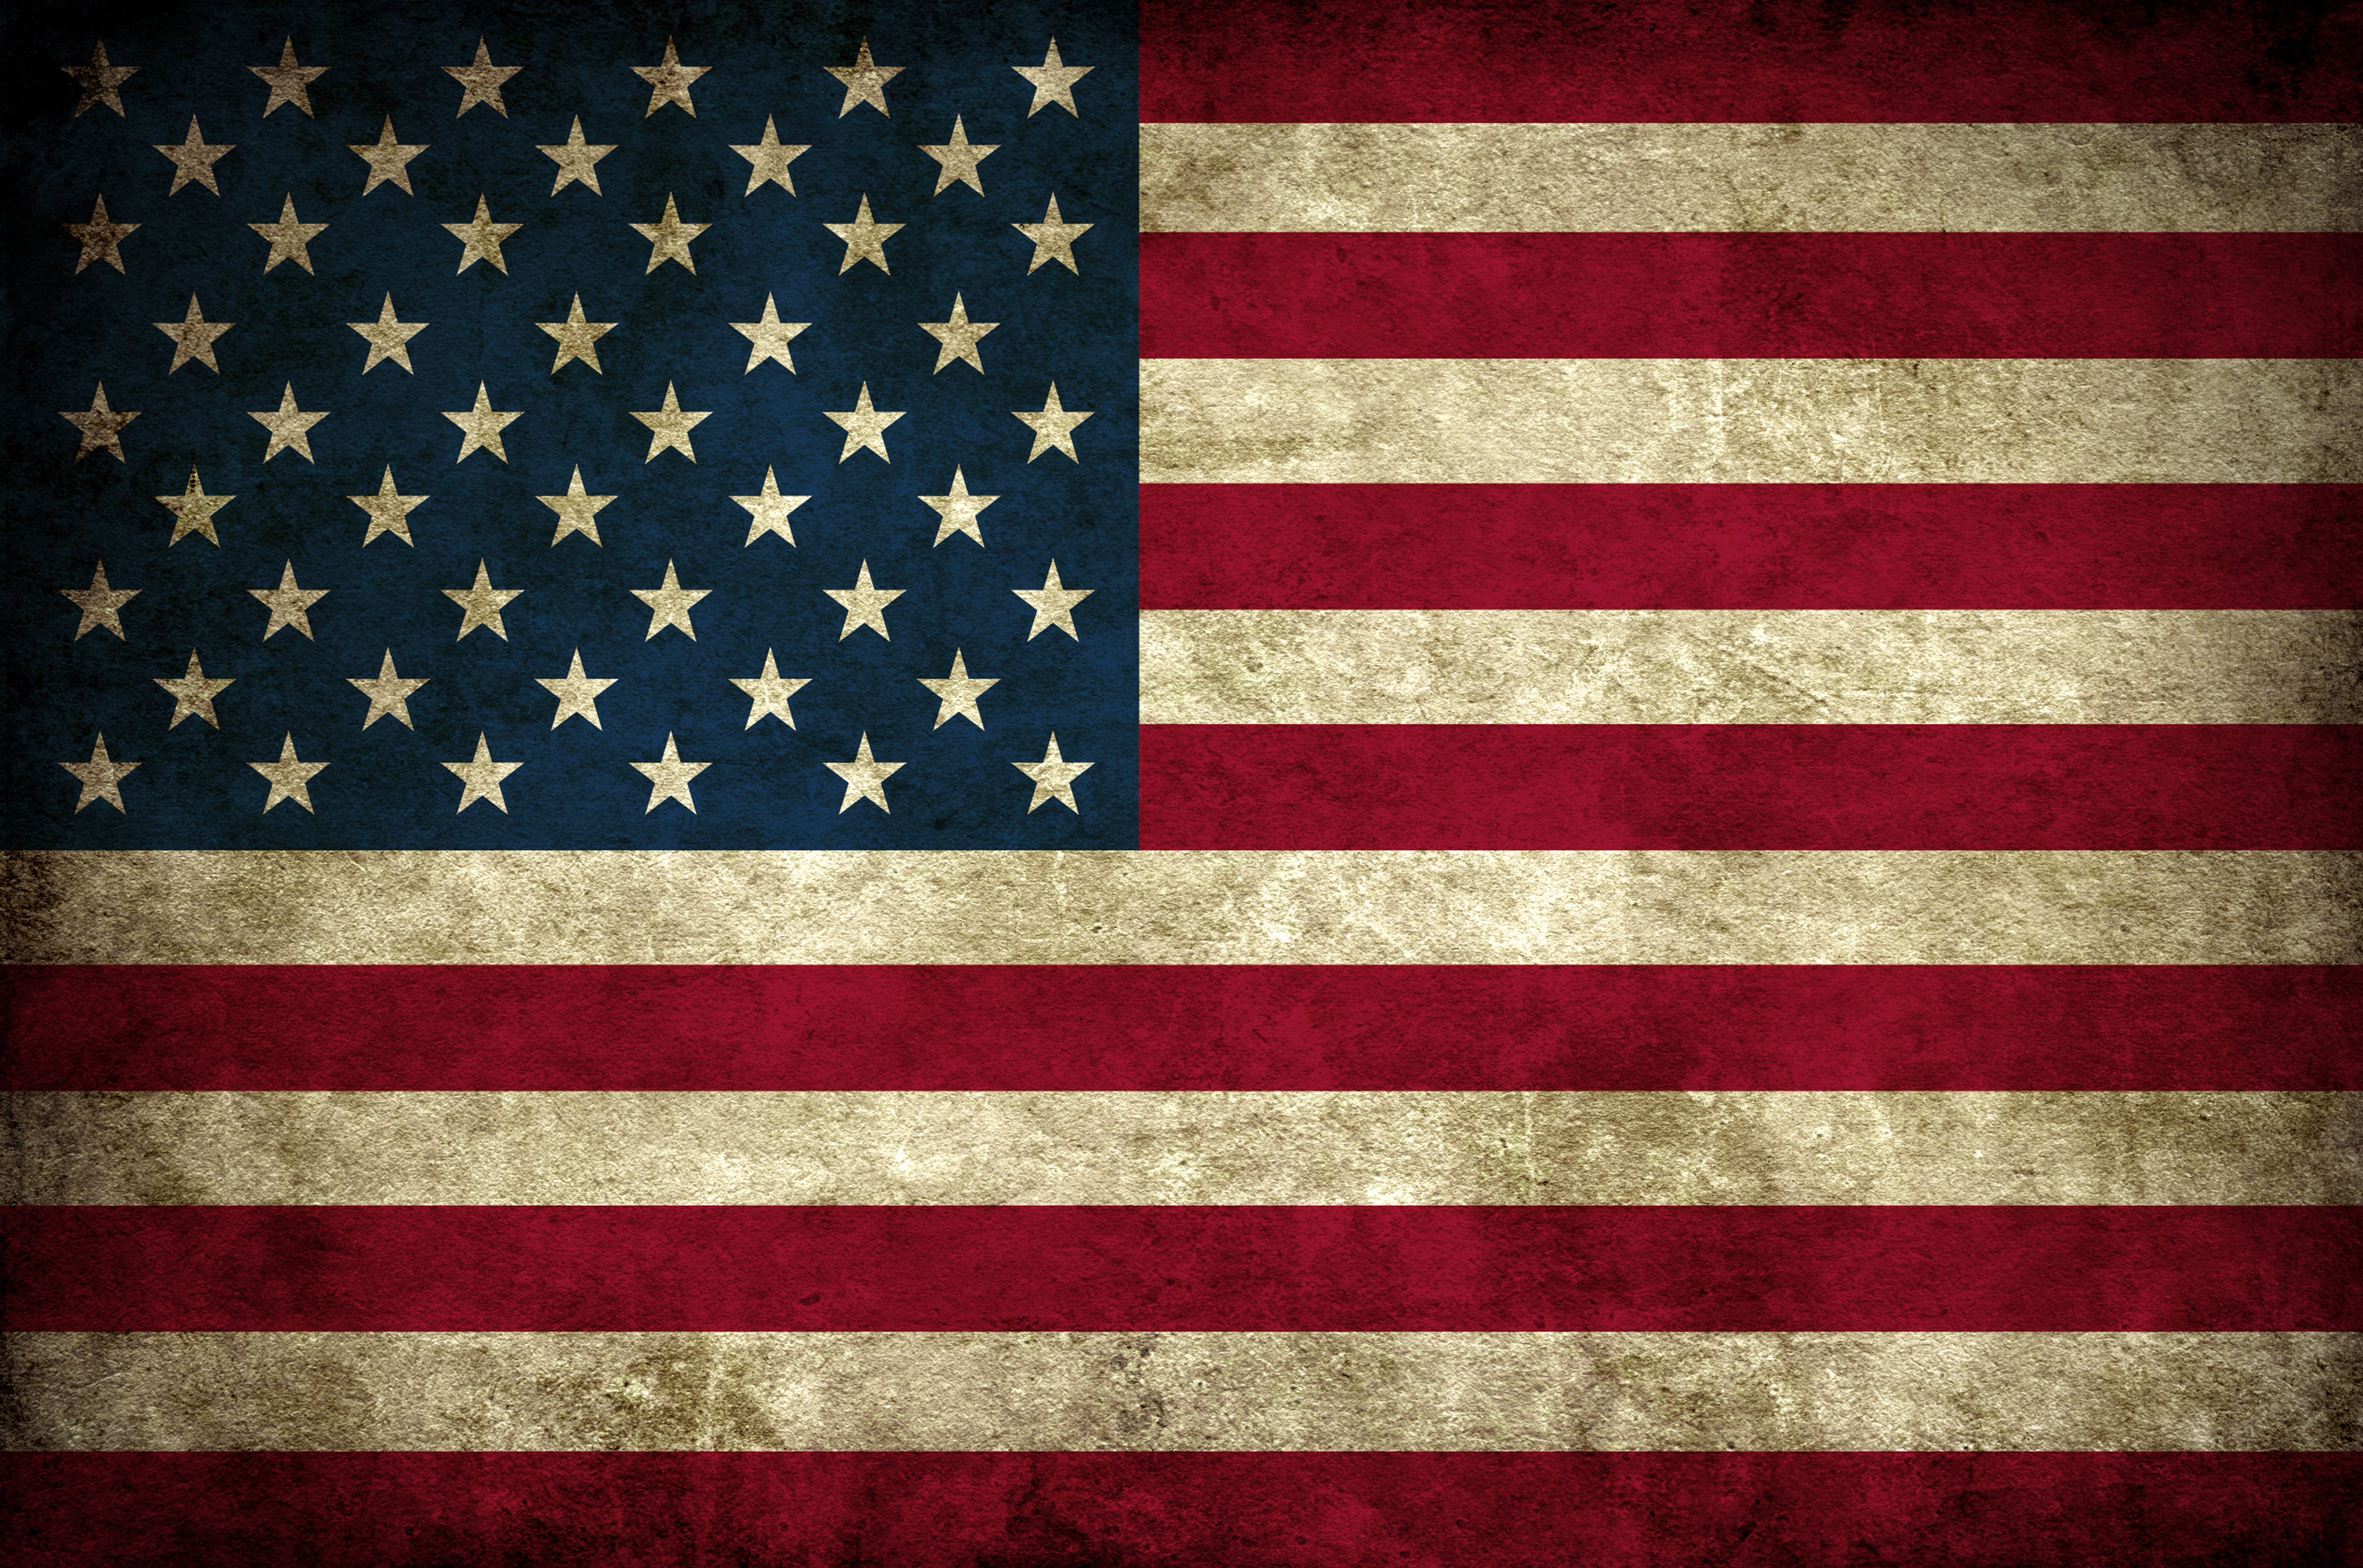 patriotism and the american flag The american flag is a symbol of united states pride and freedom the world  looks to the flag for inspiration and hope, with its rich and sometimes  controversial.